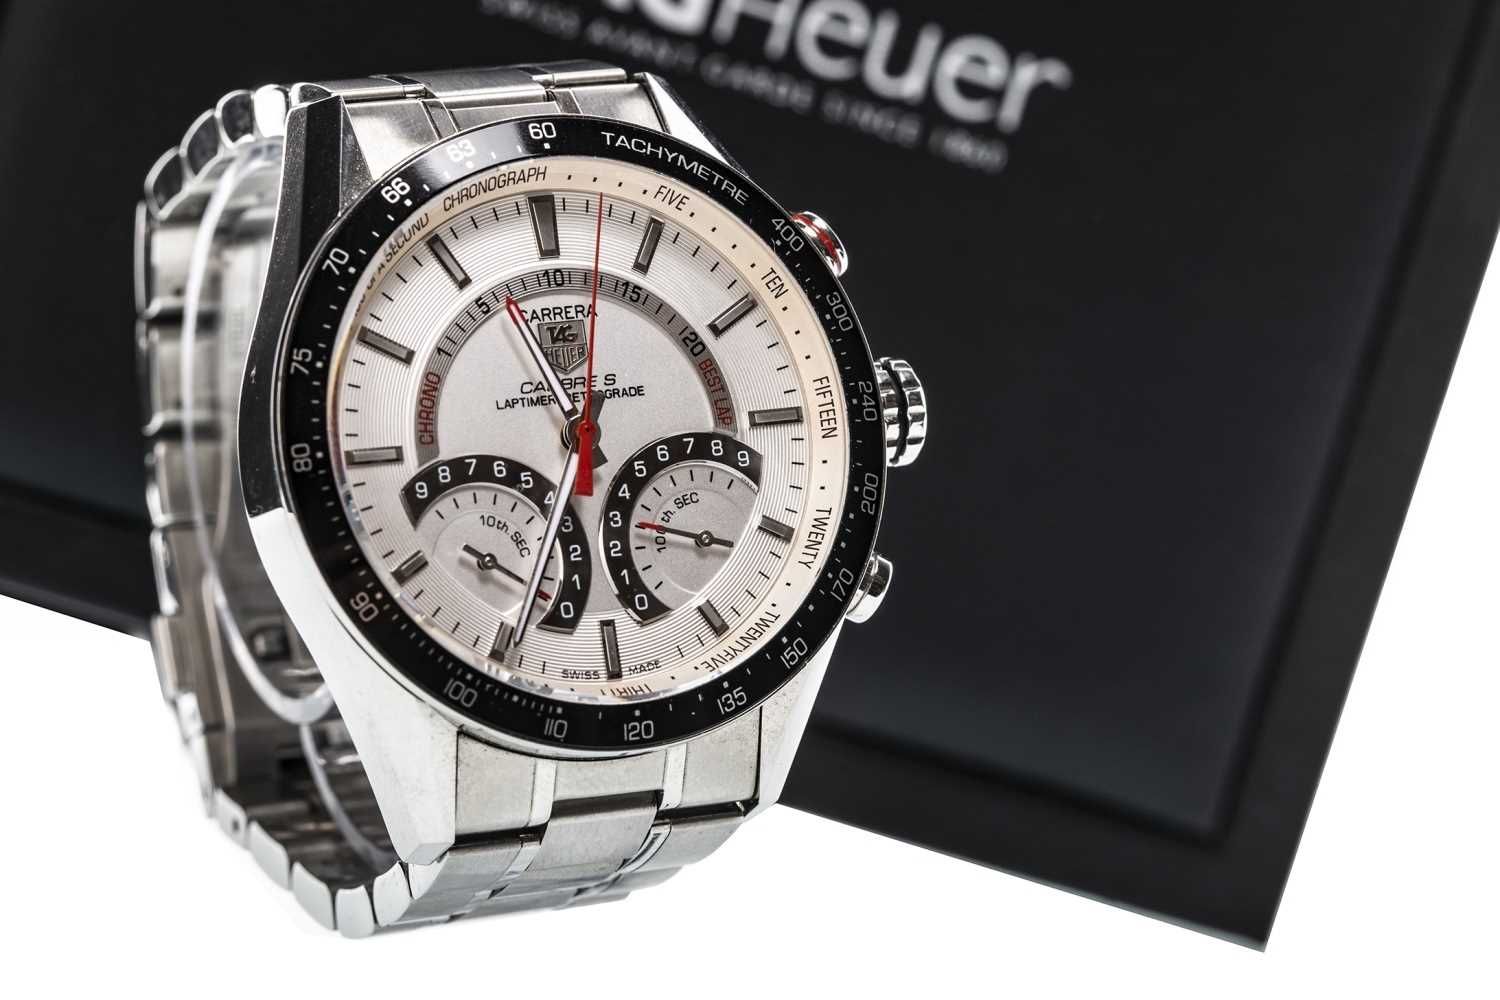 Lot 728 - A GENTLEMAN'S TAG HEUER CARRERA CALIBRE S STAINLESS STEEL QUARTZ WRIST WATCH